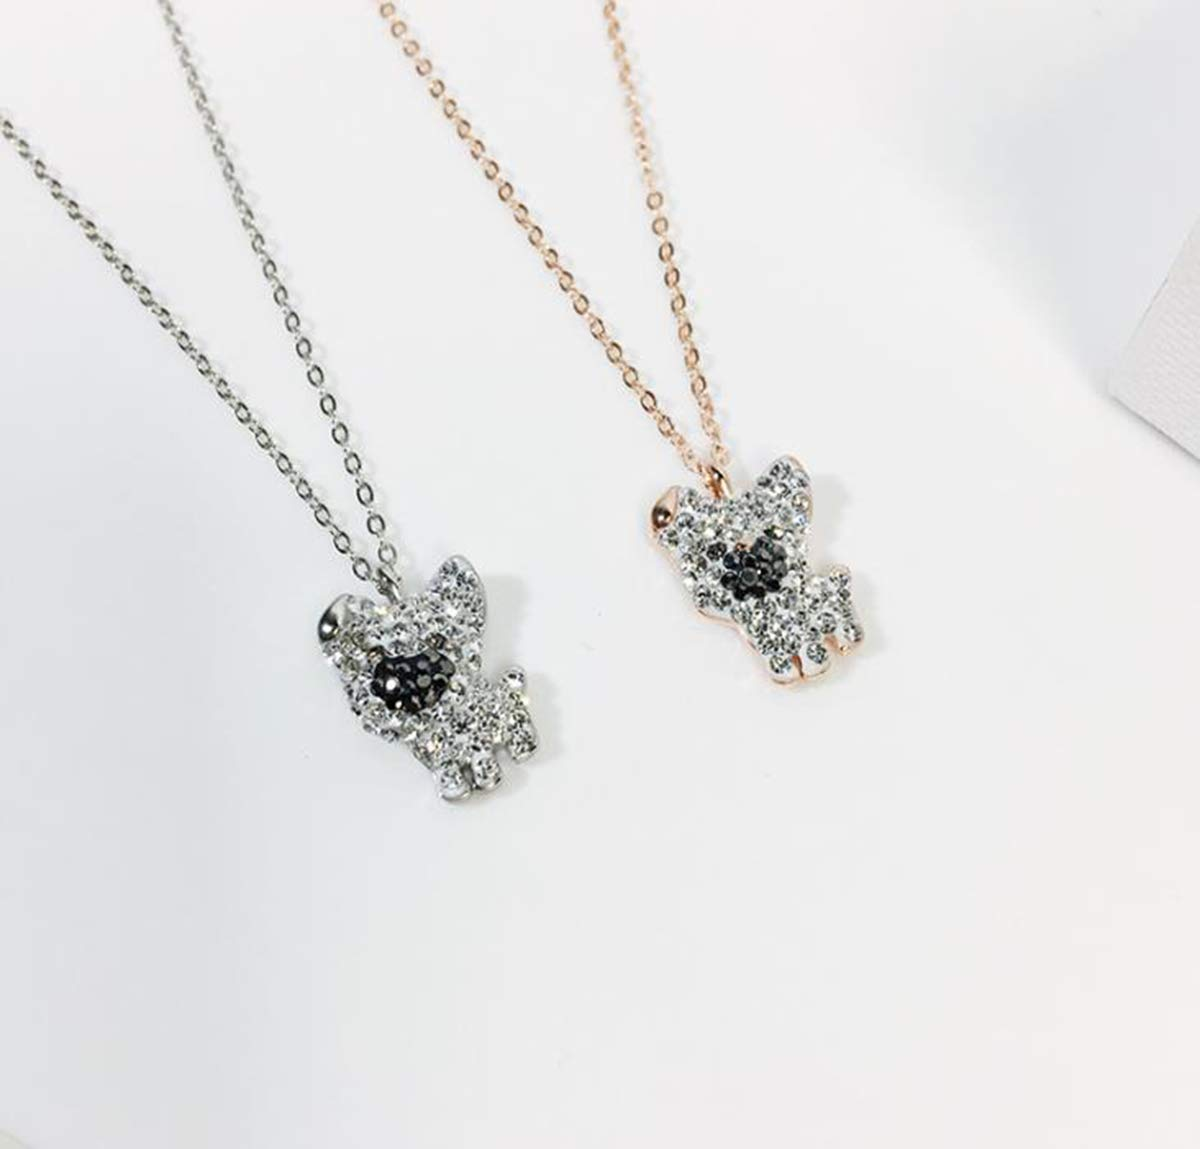 White gold Onlyfo Abstract 925 Silver Dog Pave Crystal Pendant Necklace with Jewelry Box,Short Dog Necklace for Women (White gold)